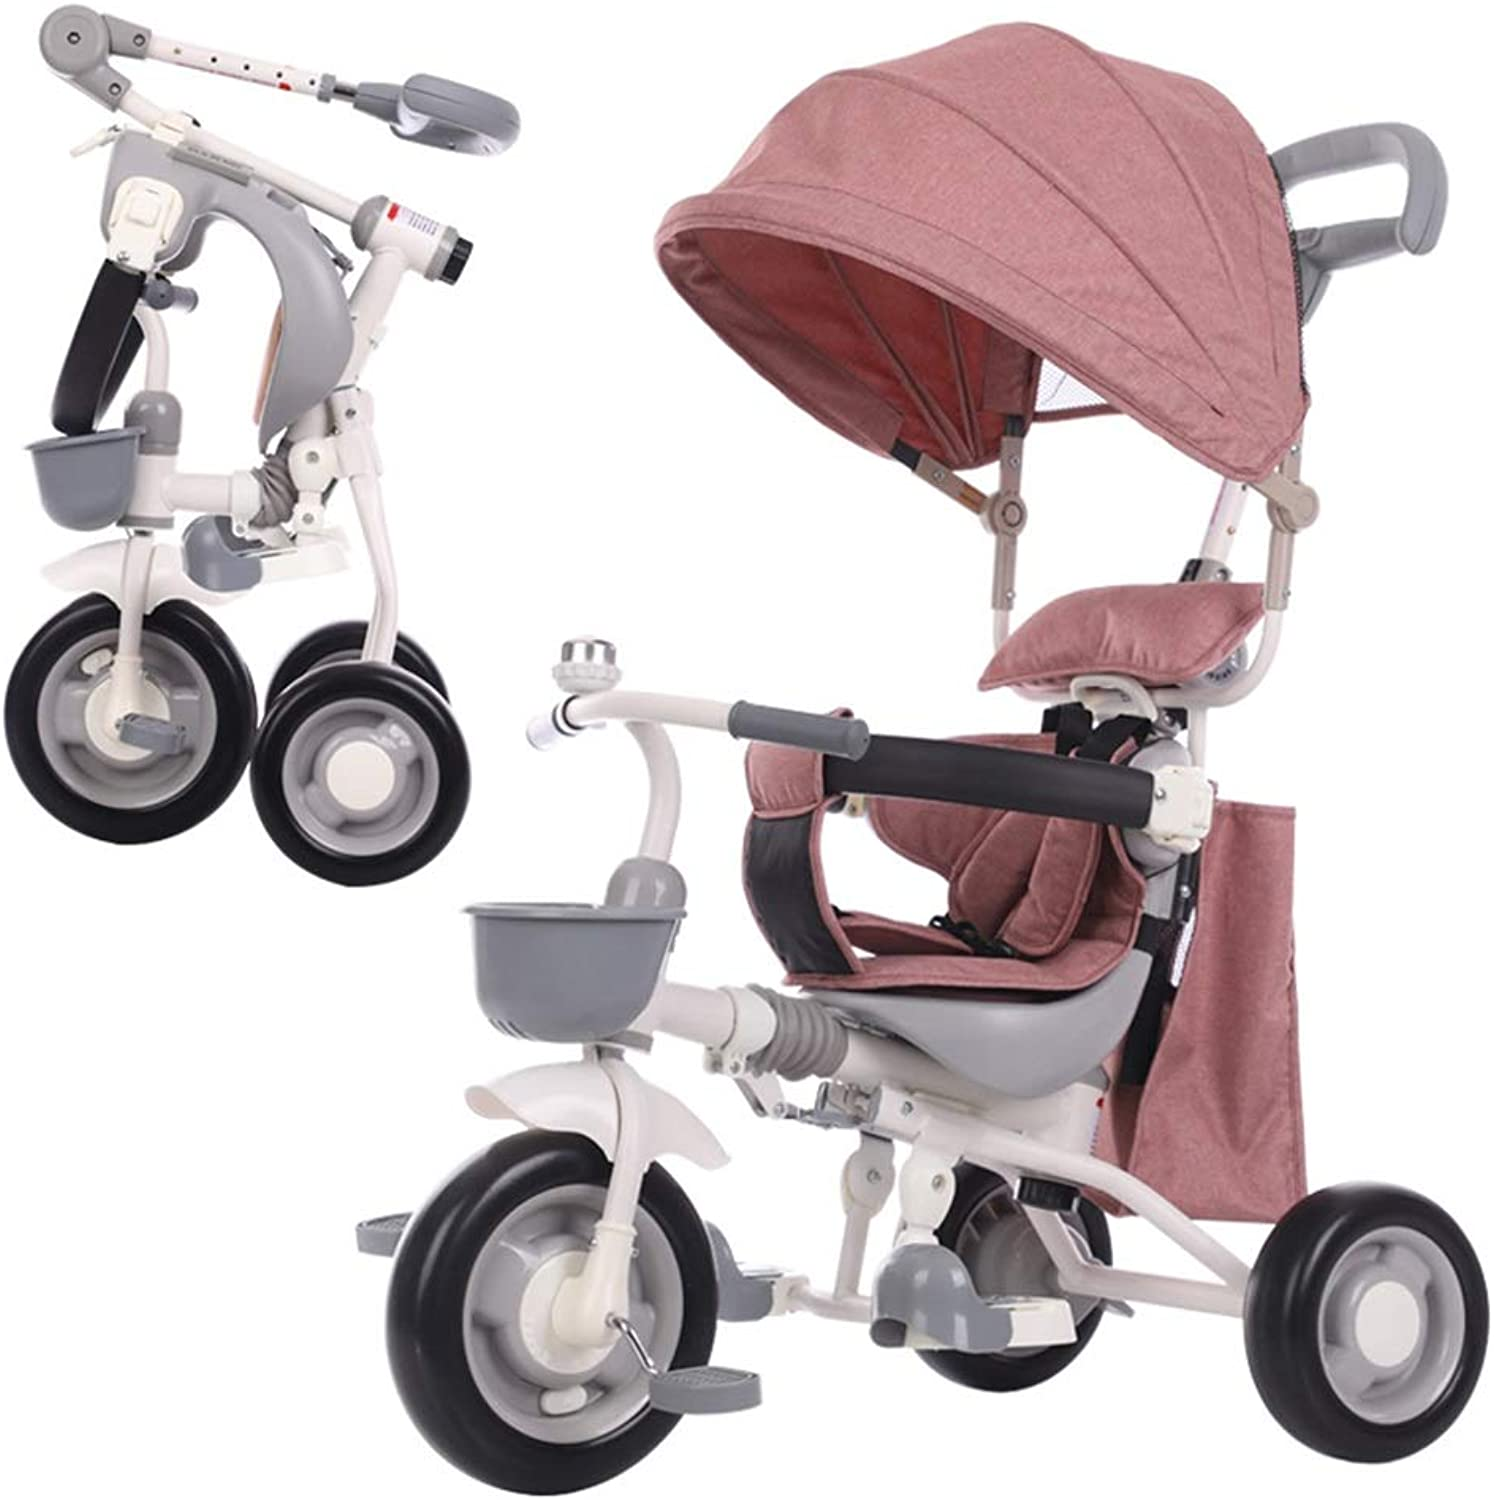 YUMEIGE Kids' Tricycles Kids Tricycle Solid Wheel 1-6 Years Old Birthday Gift Tricycle Kids Strollers Toddler Trike with Awning Storage Bag 3-Point Safety Harness Available